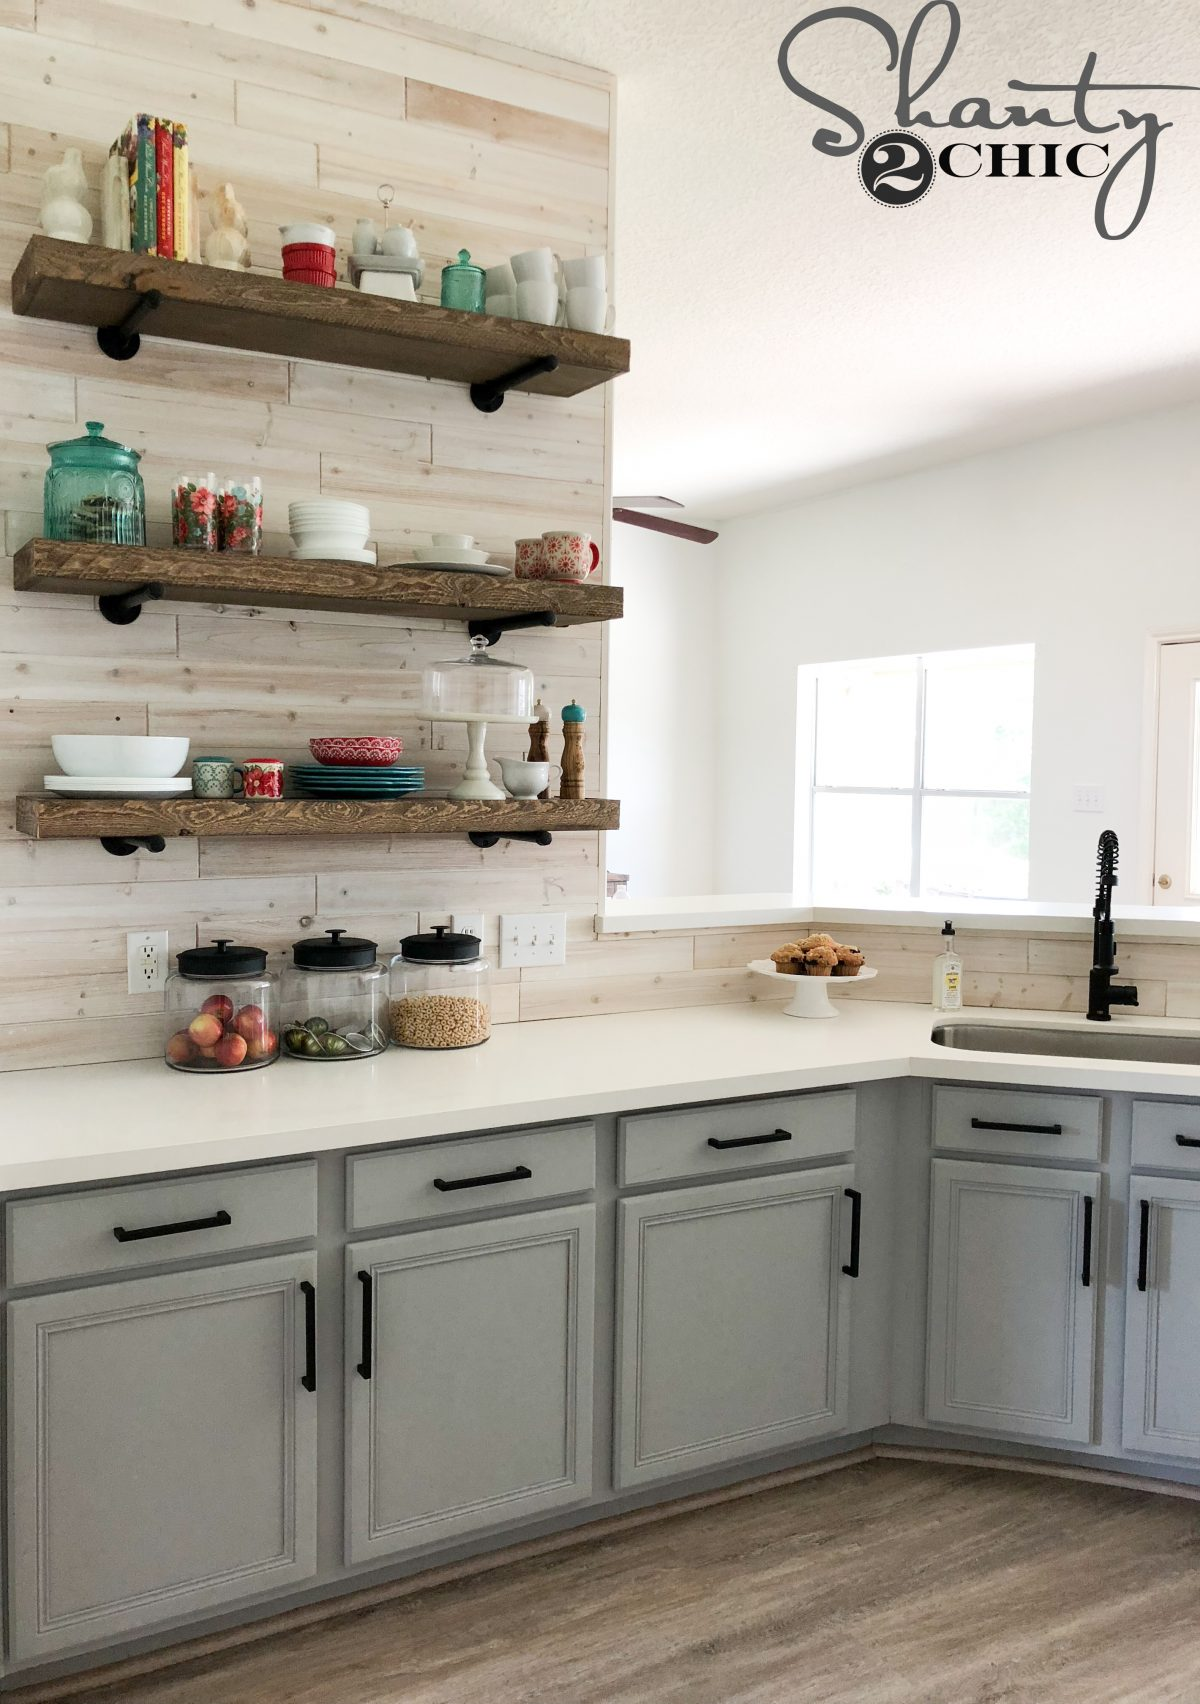 How To Easily Paint Kitchen Cabinet! - Shanty 2 Chic